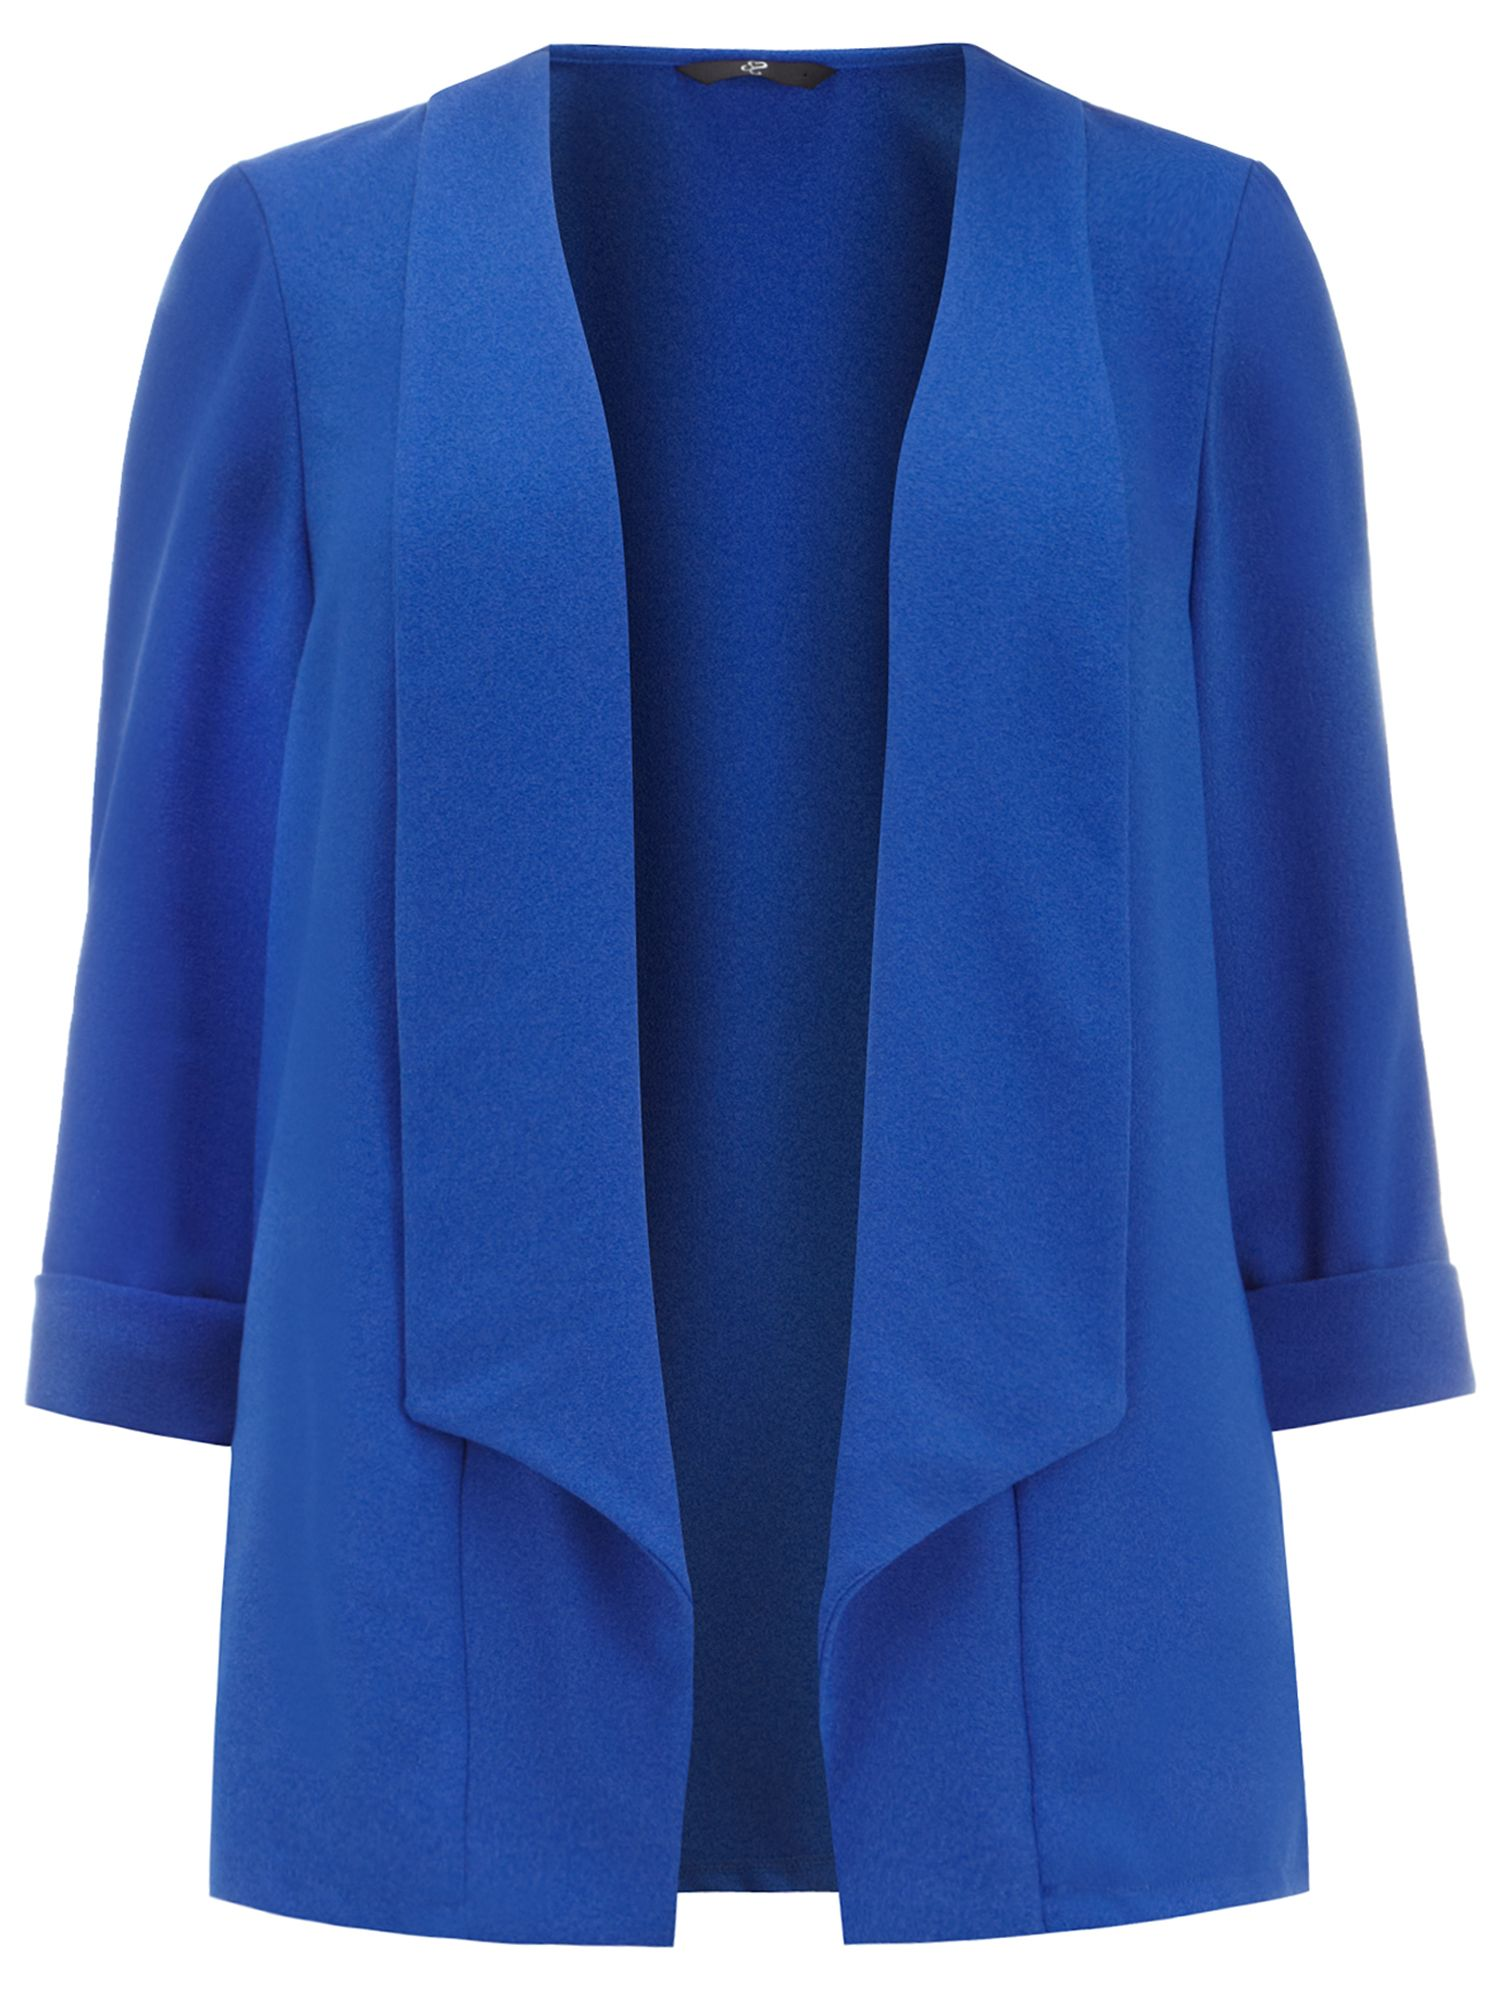 Blue Crepe Jacket